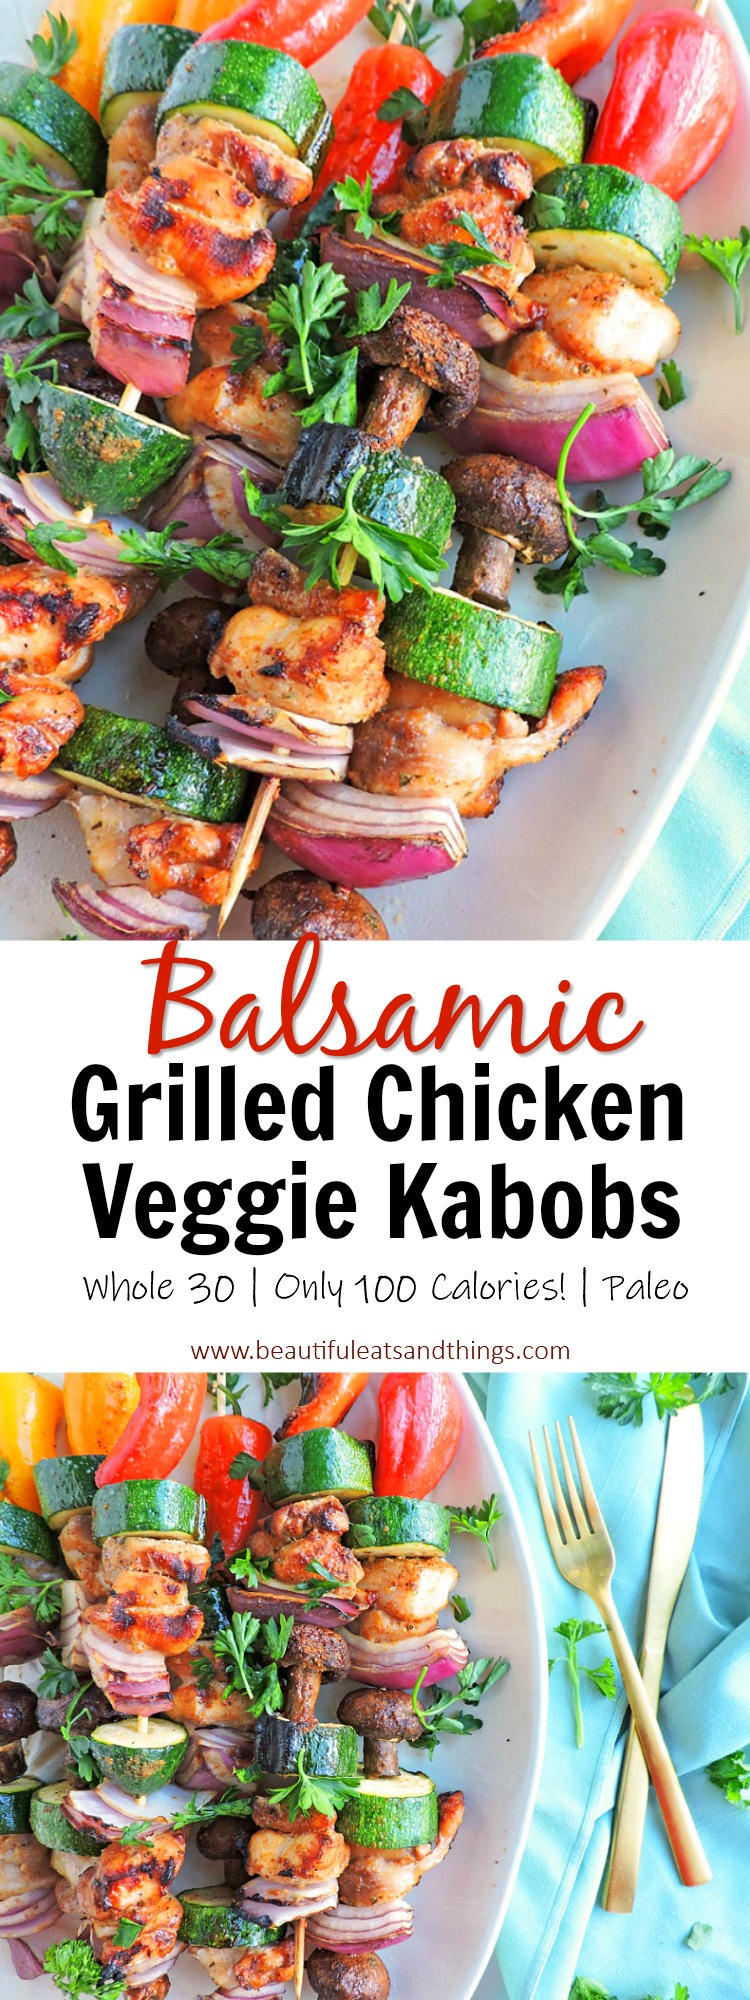 Grilled Balsamic Grilled Chicken and Veggie Kabobs